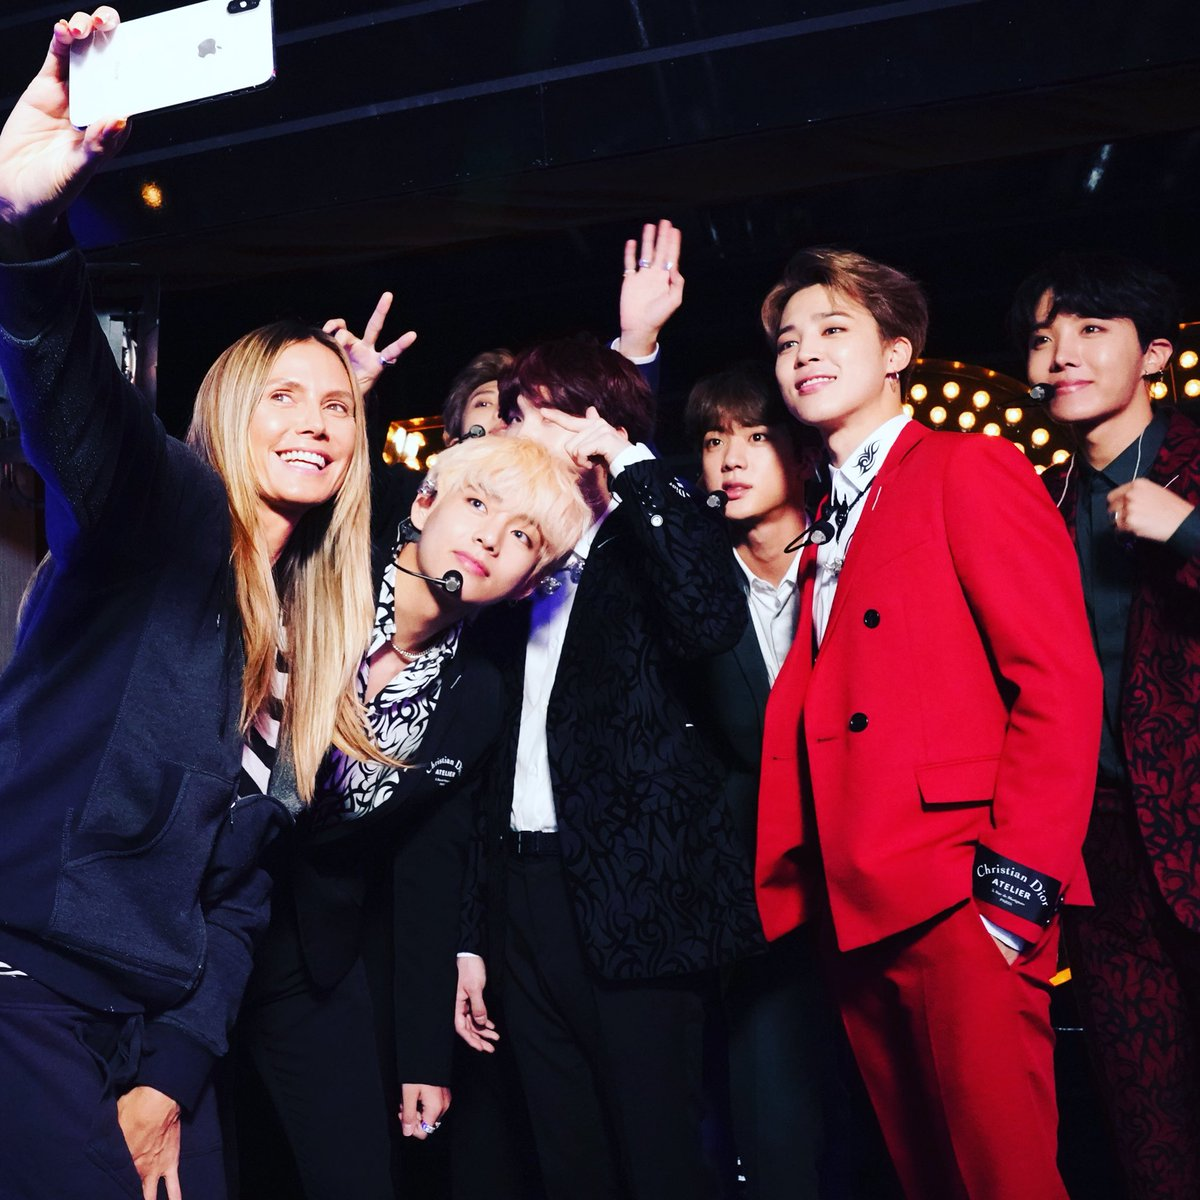 #BTSonAGT happens tomorrow night! I'm so excited for @bts_twt! ???? https://t.co/GHFNJteRtp